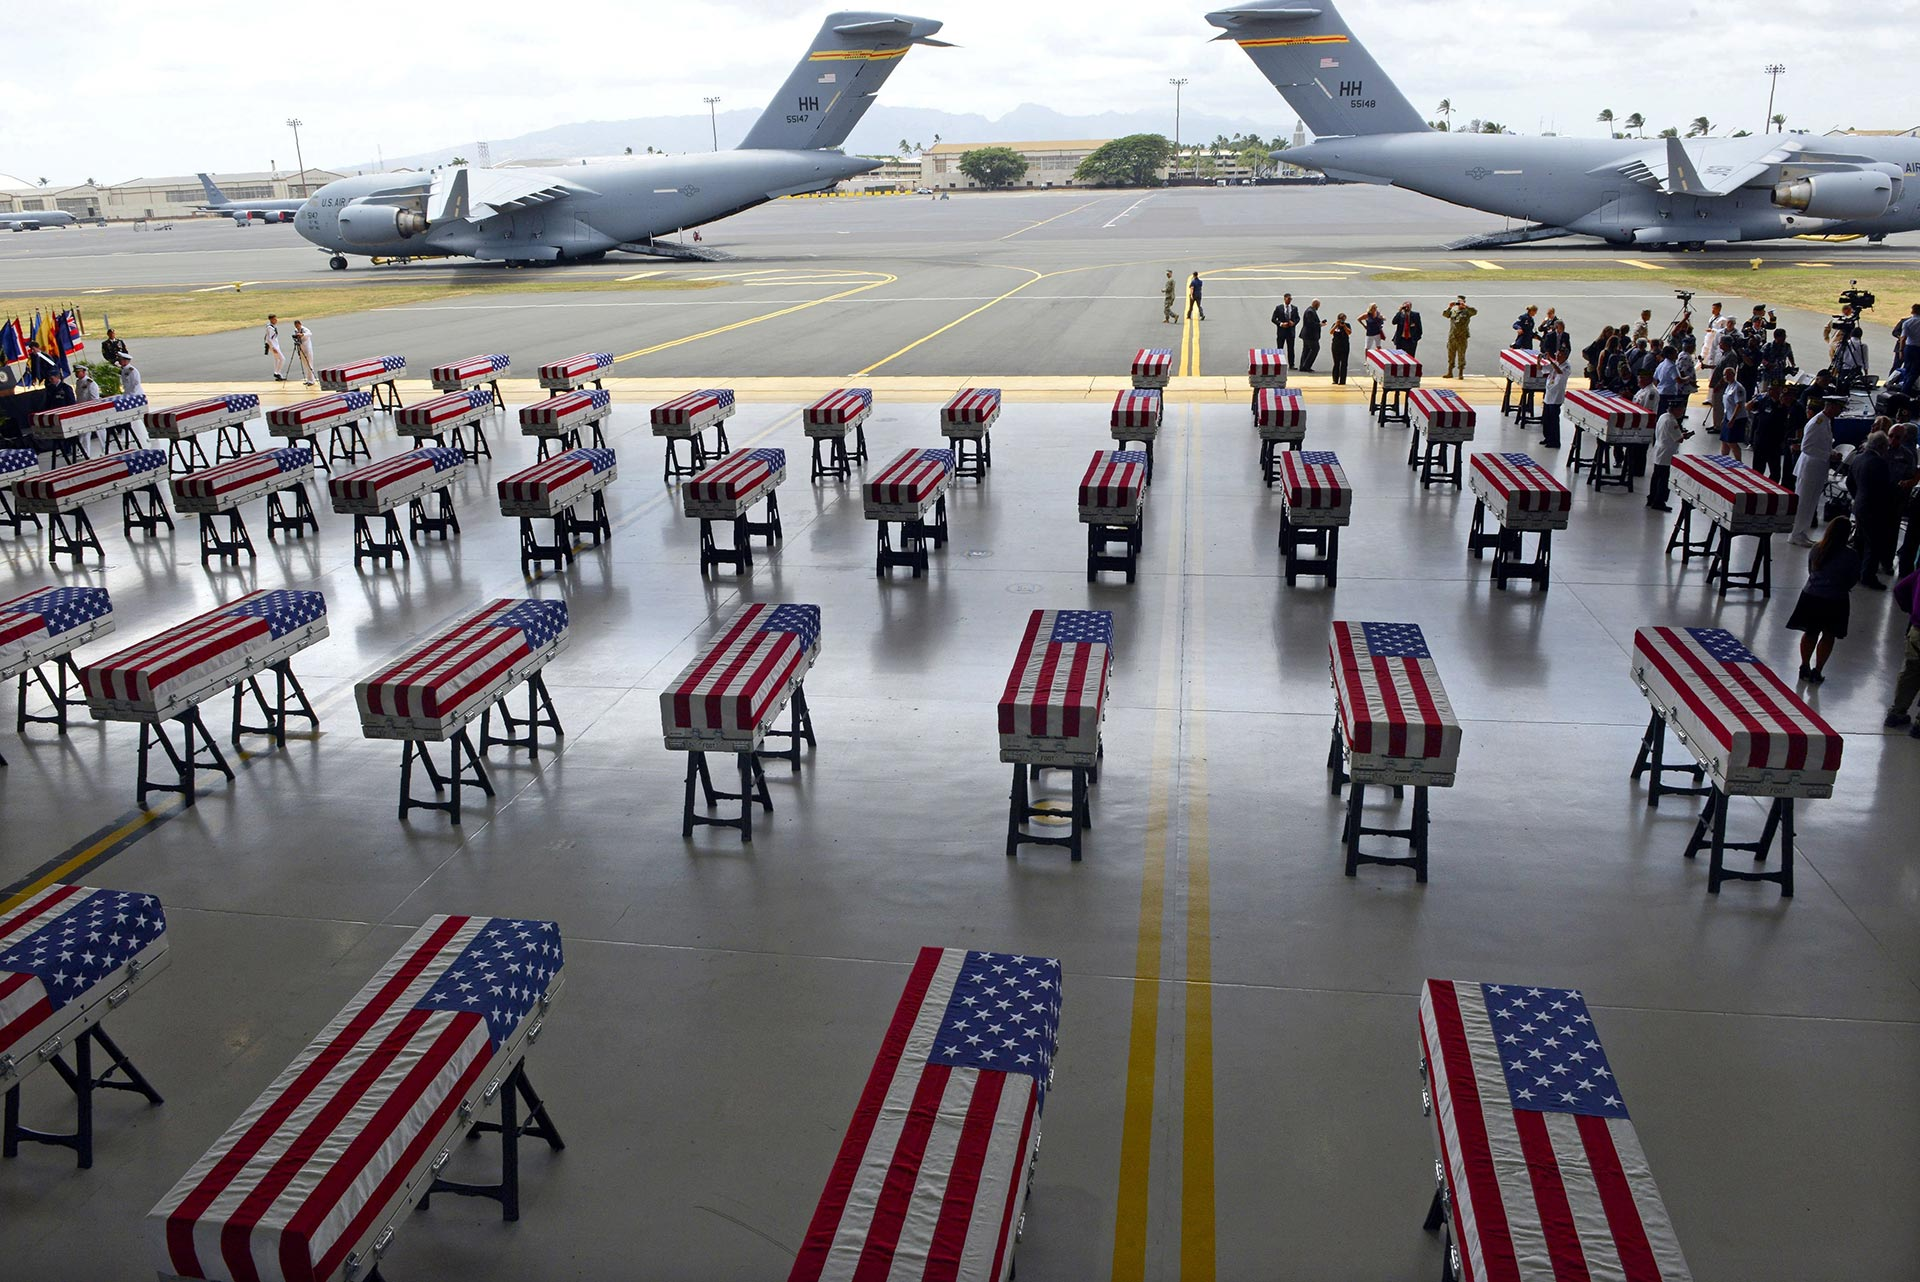 Transfer cases containing the remains of American soldiers repatriated from North Korea